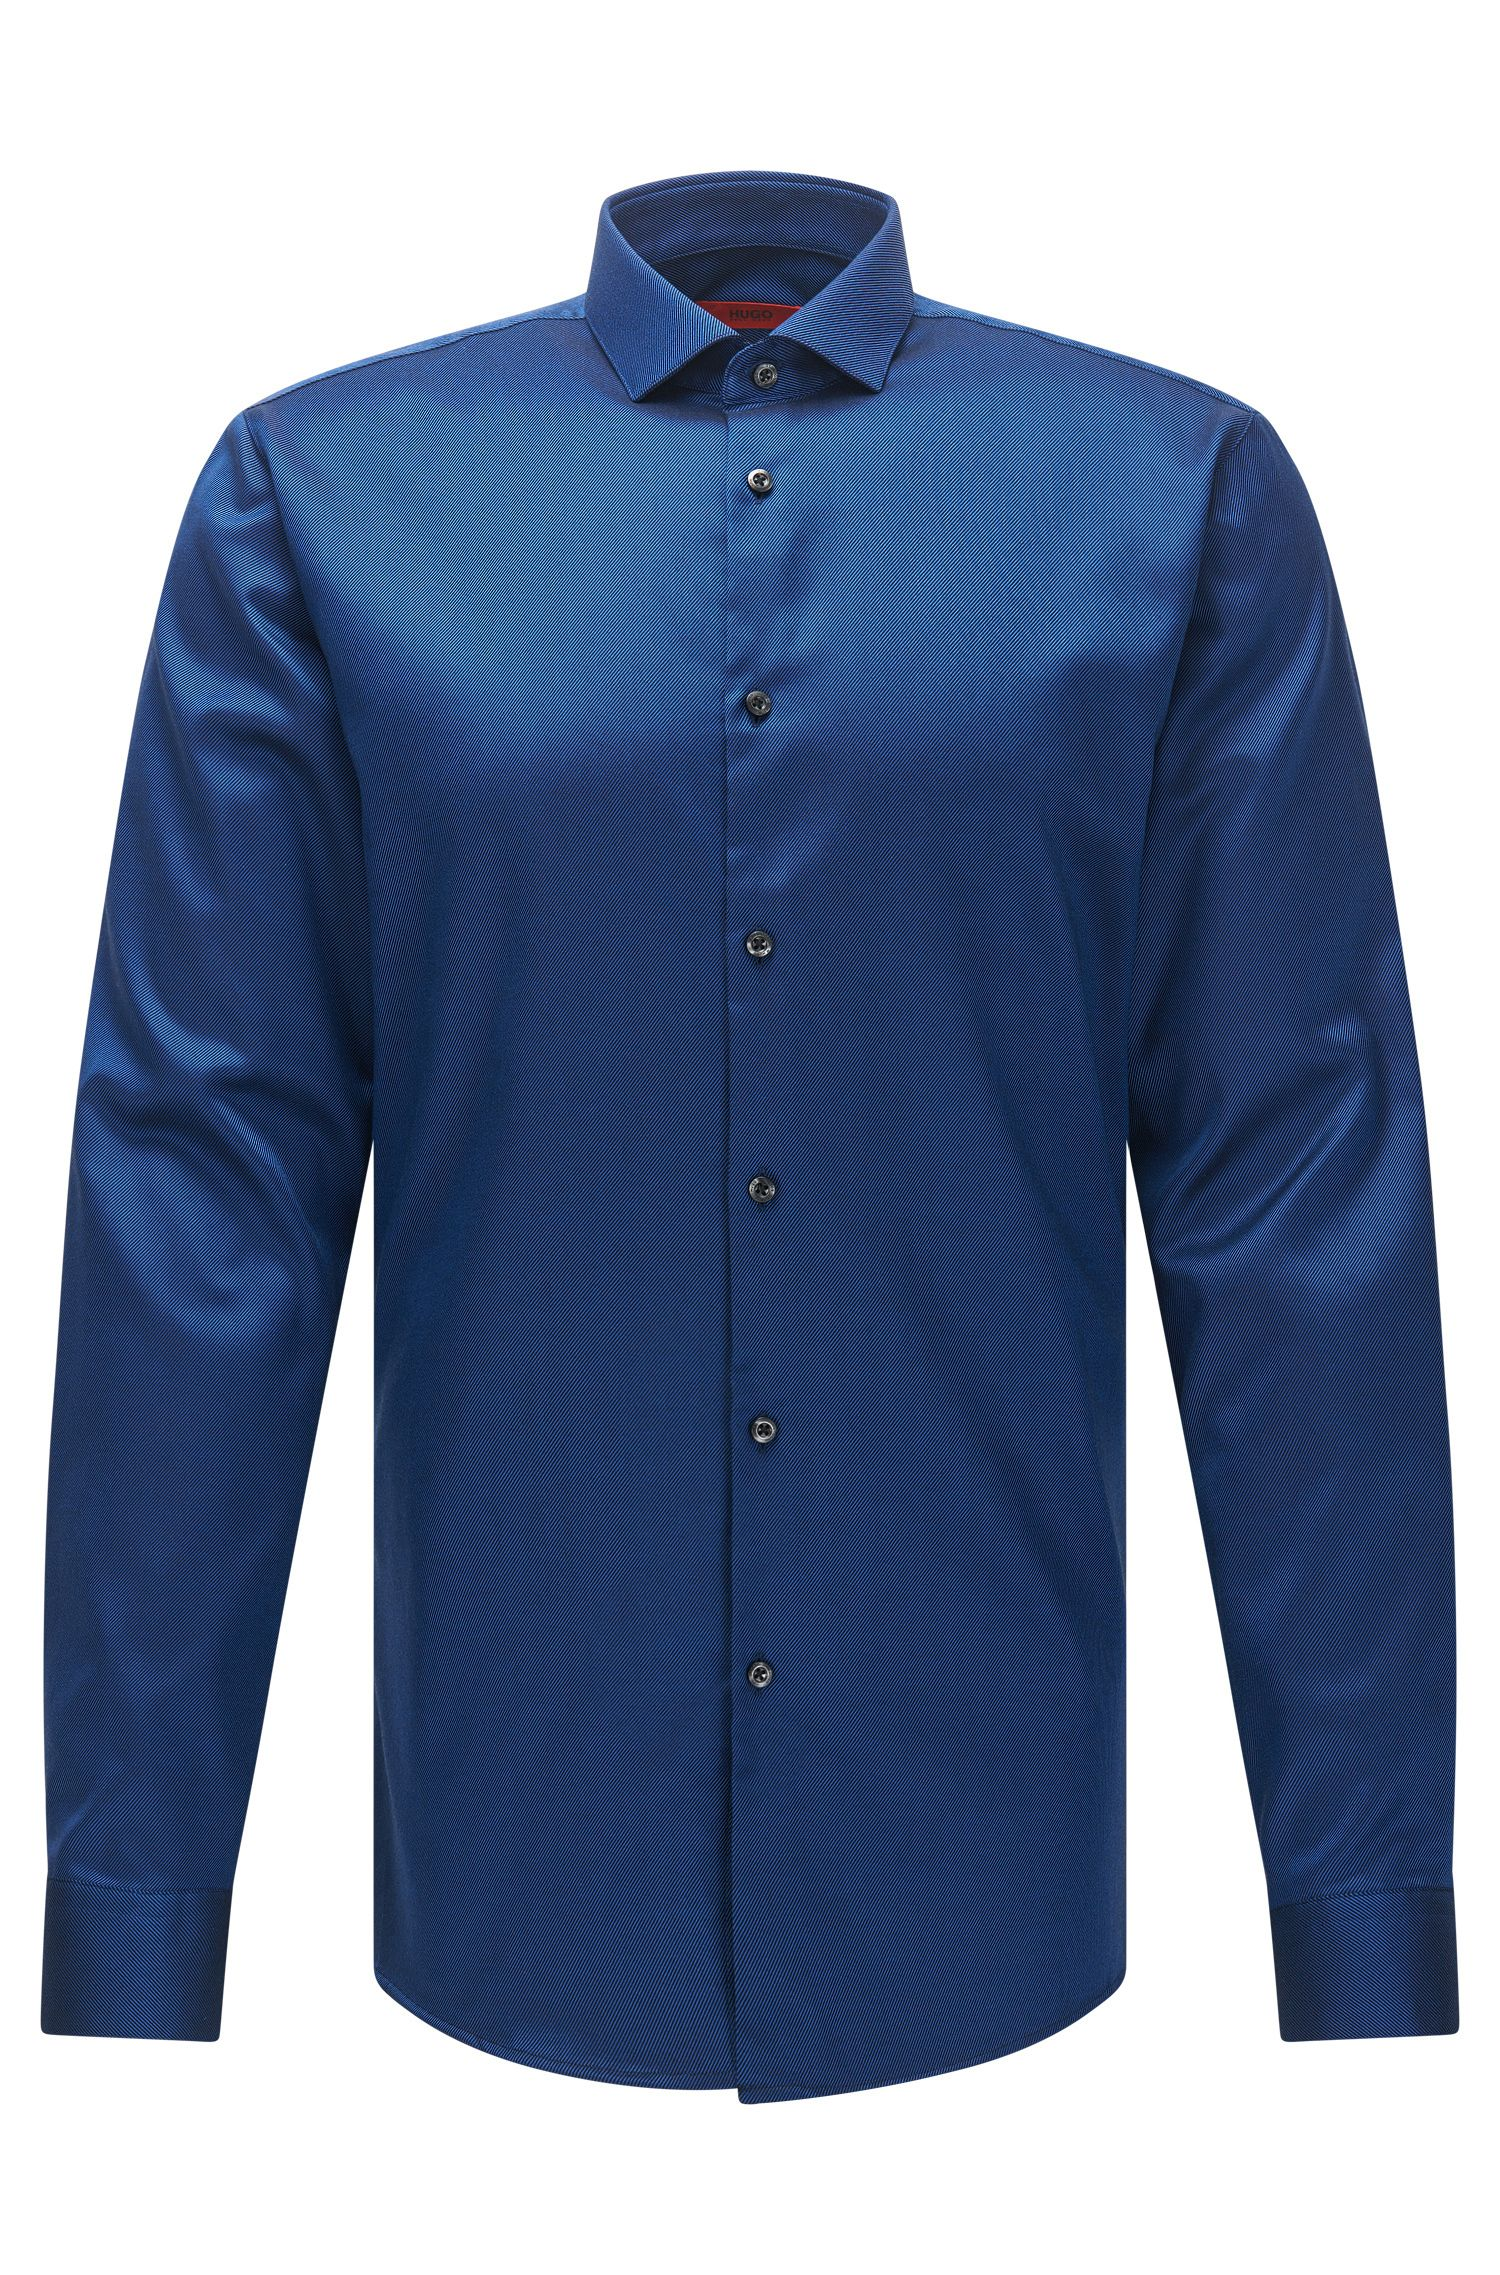 Easy-Iron Twill Cotton Dress Shirt, Extra-Slim Fit | Erondo